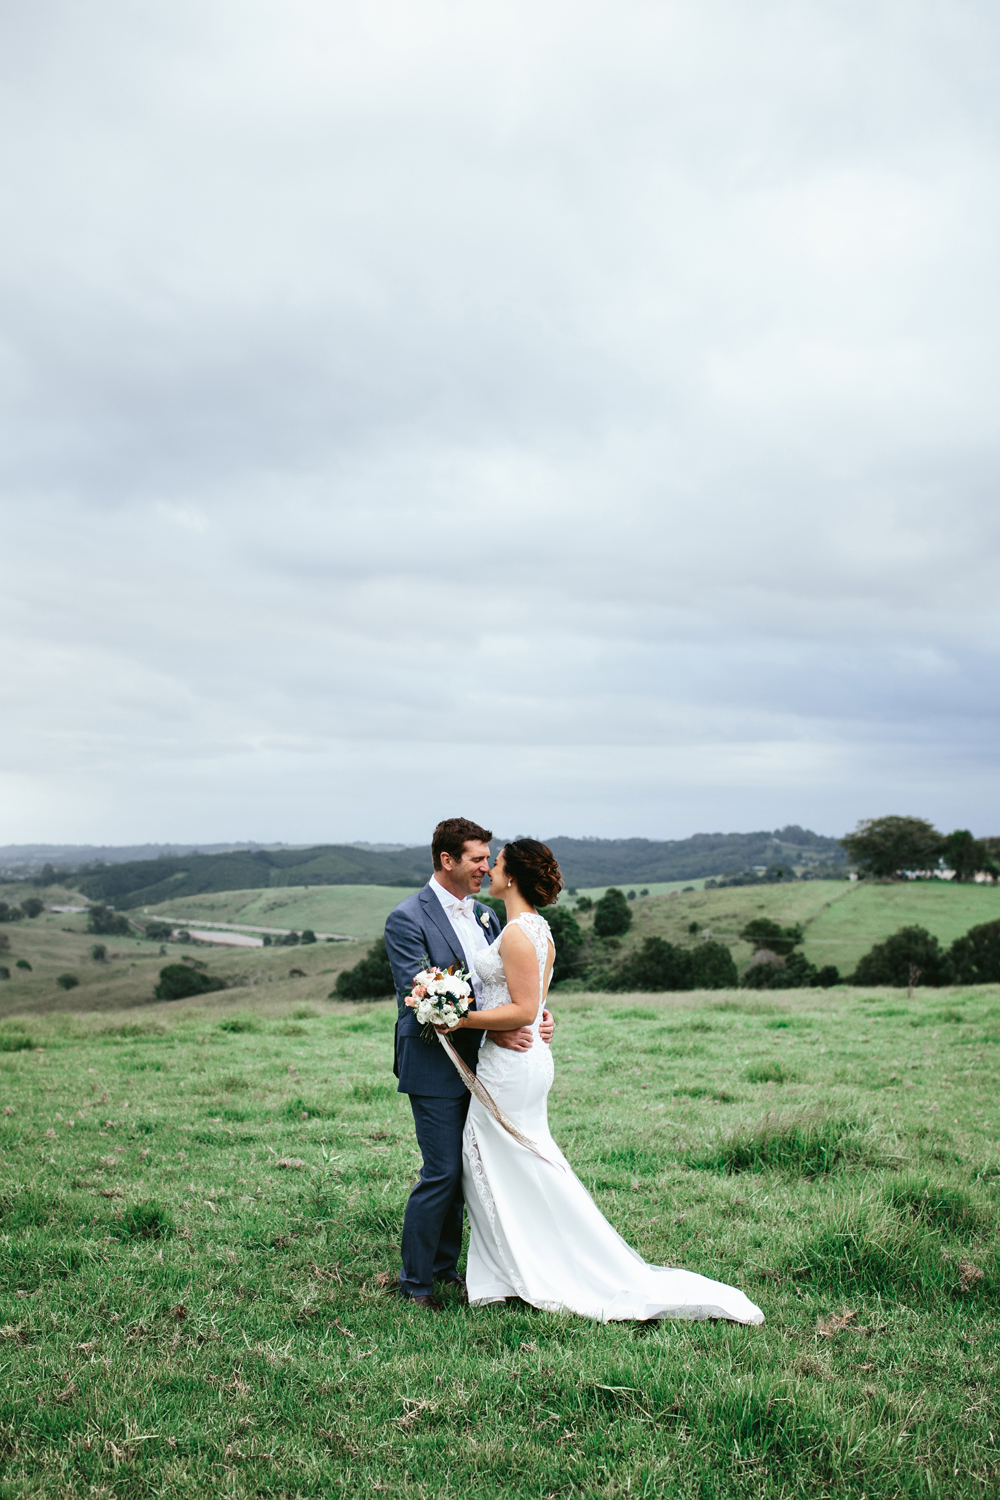 byron_view_farm_wedding_photography118